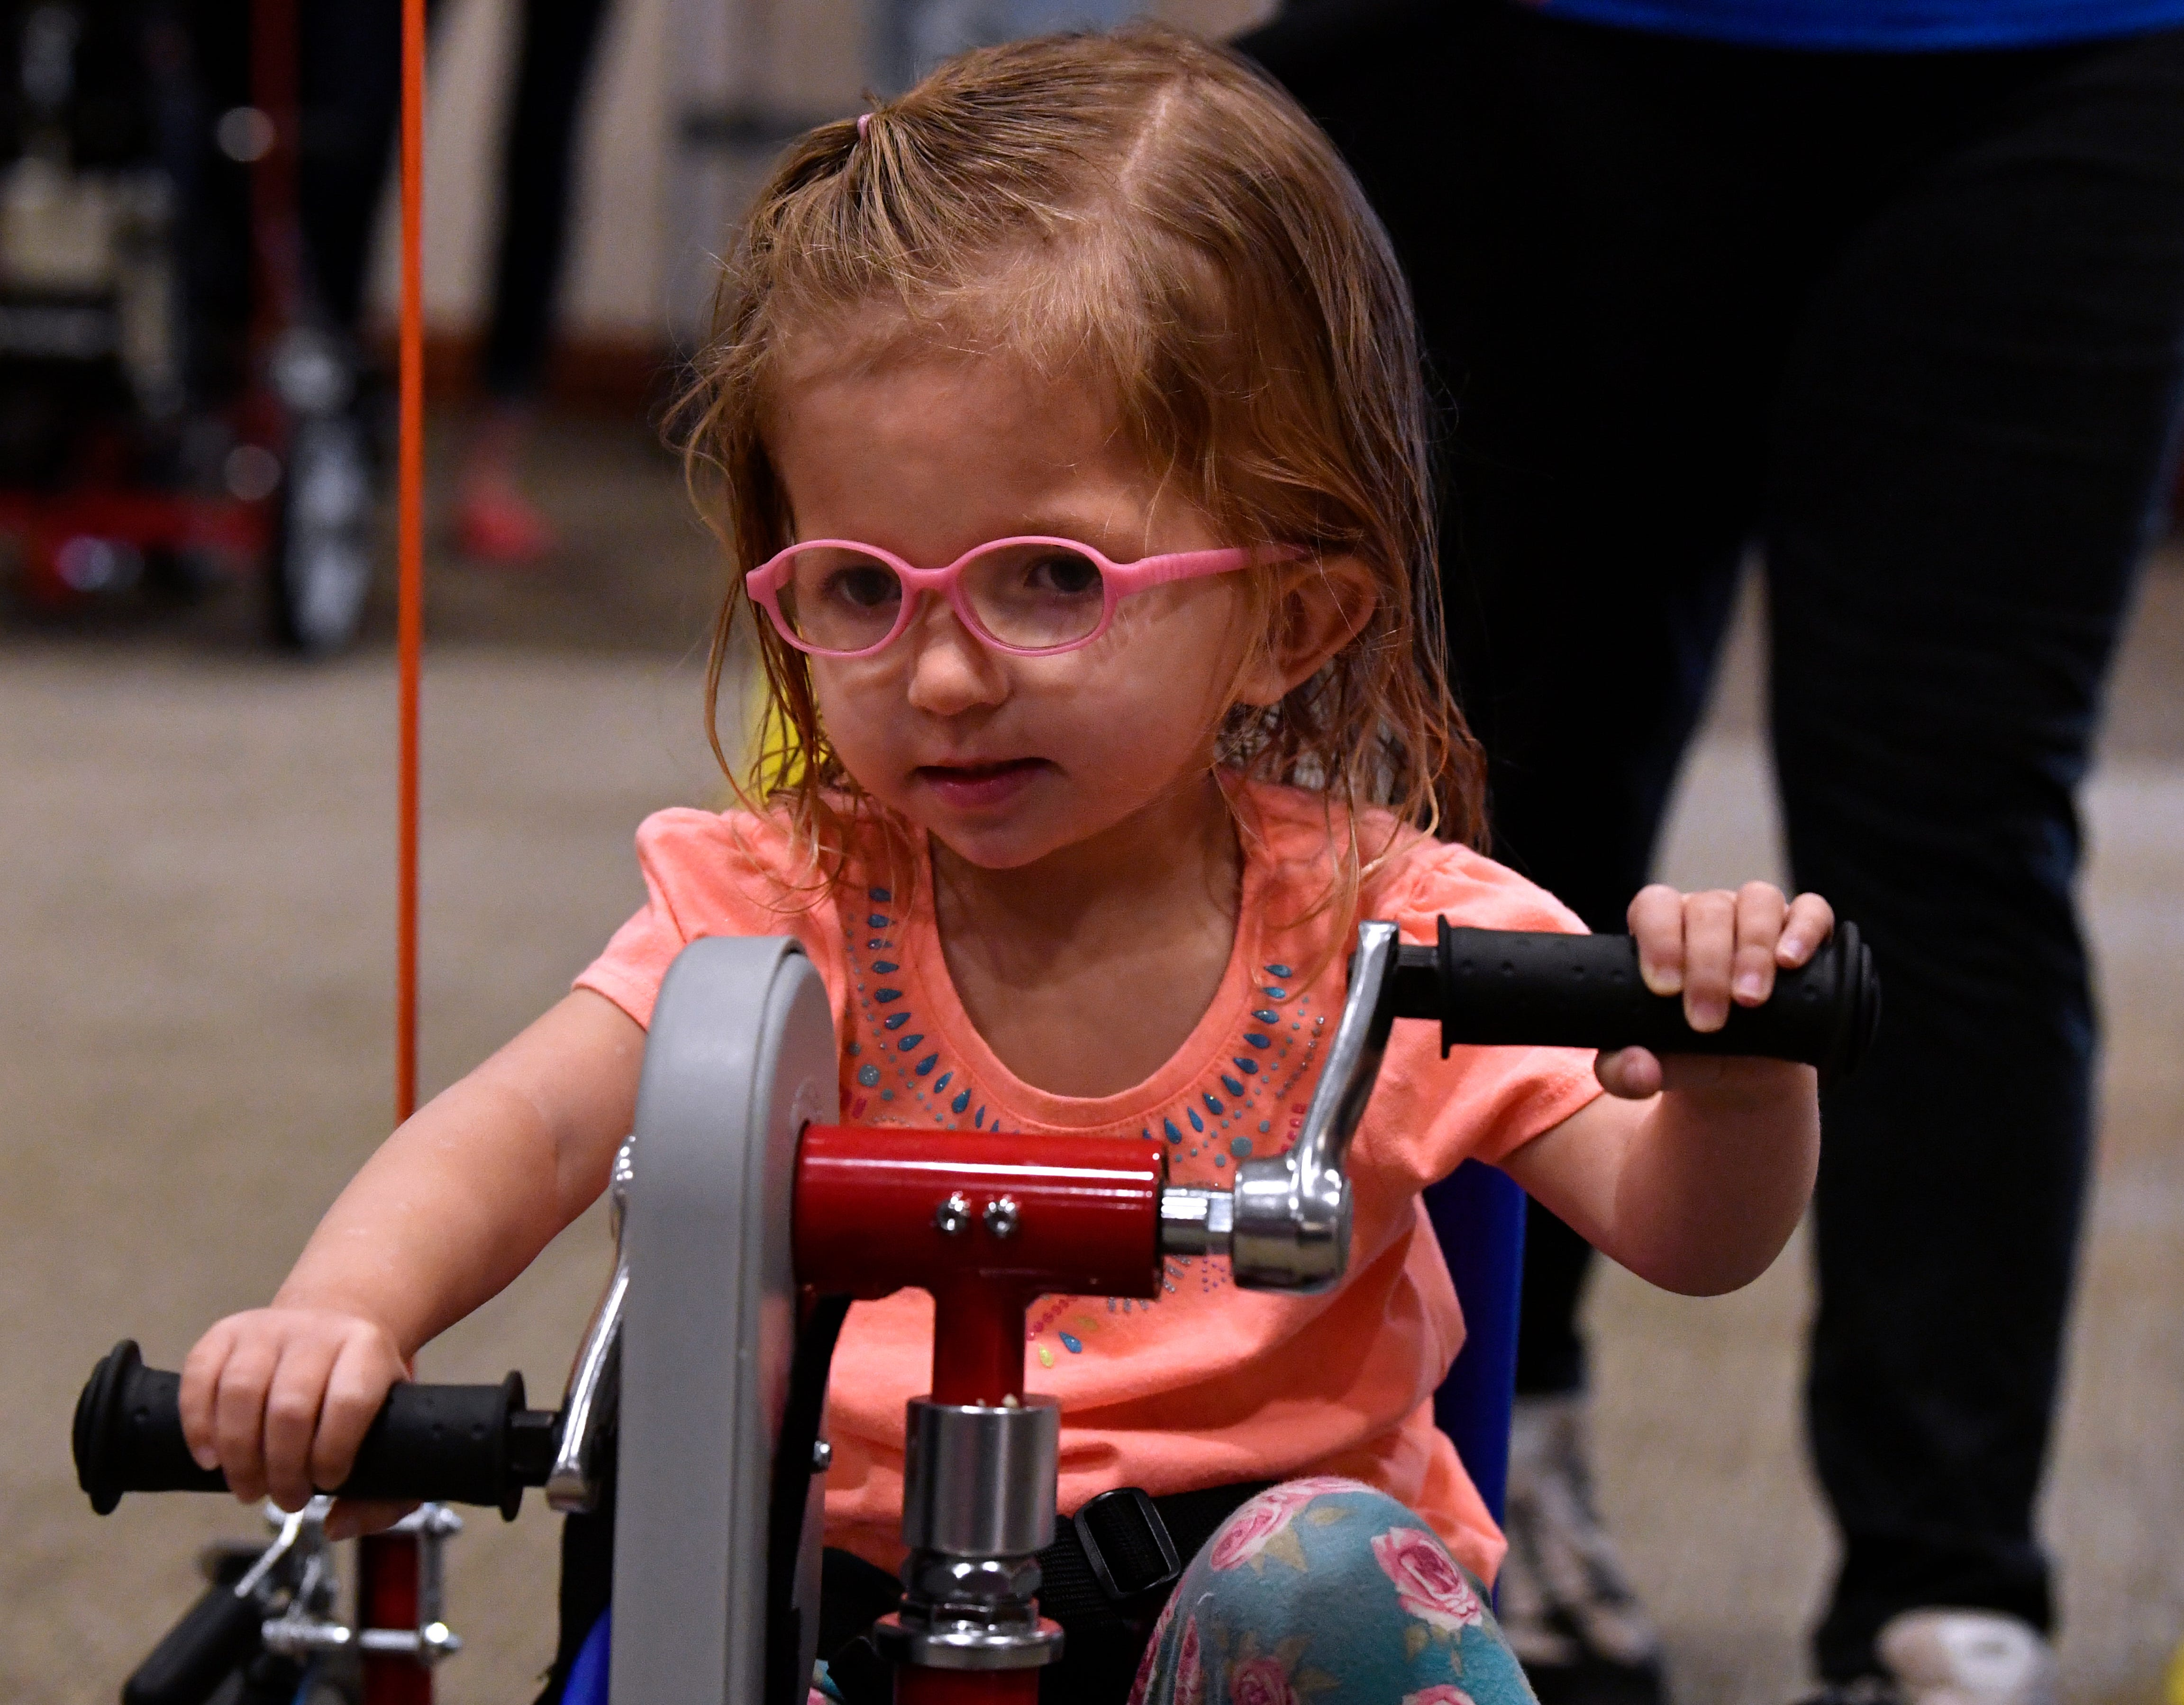 Ivory Bass, 3, uses hand cranks and pedals simultaneously as she wheels around the West Texas Rehabilitation Center board room Saturday.